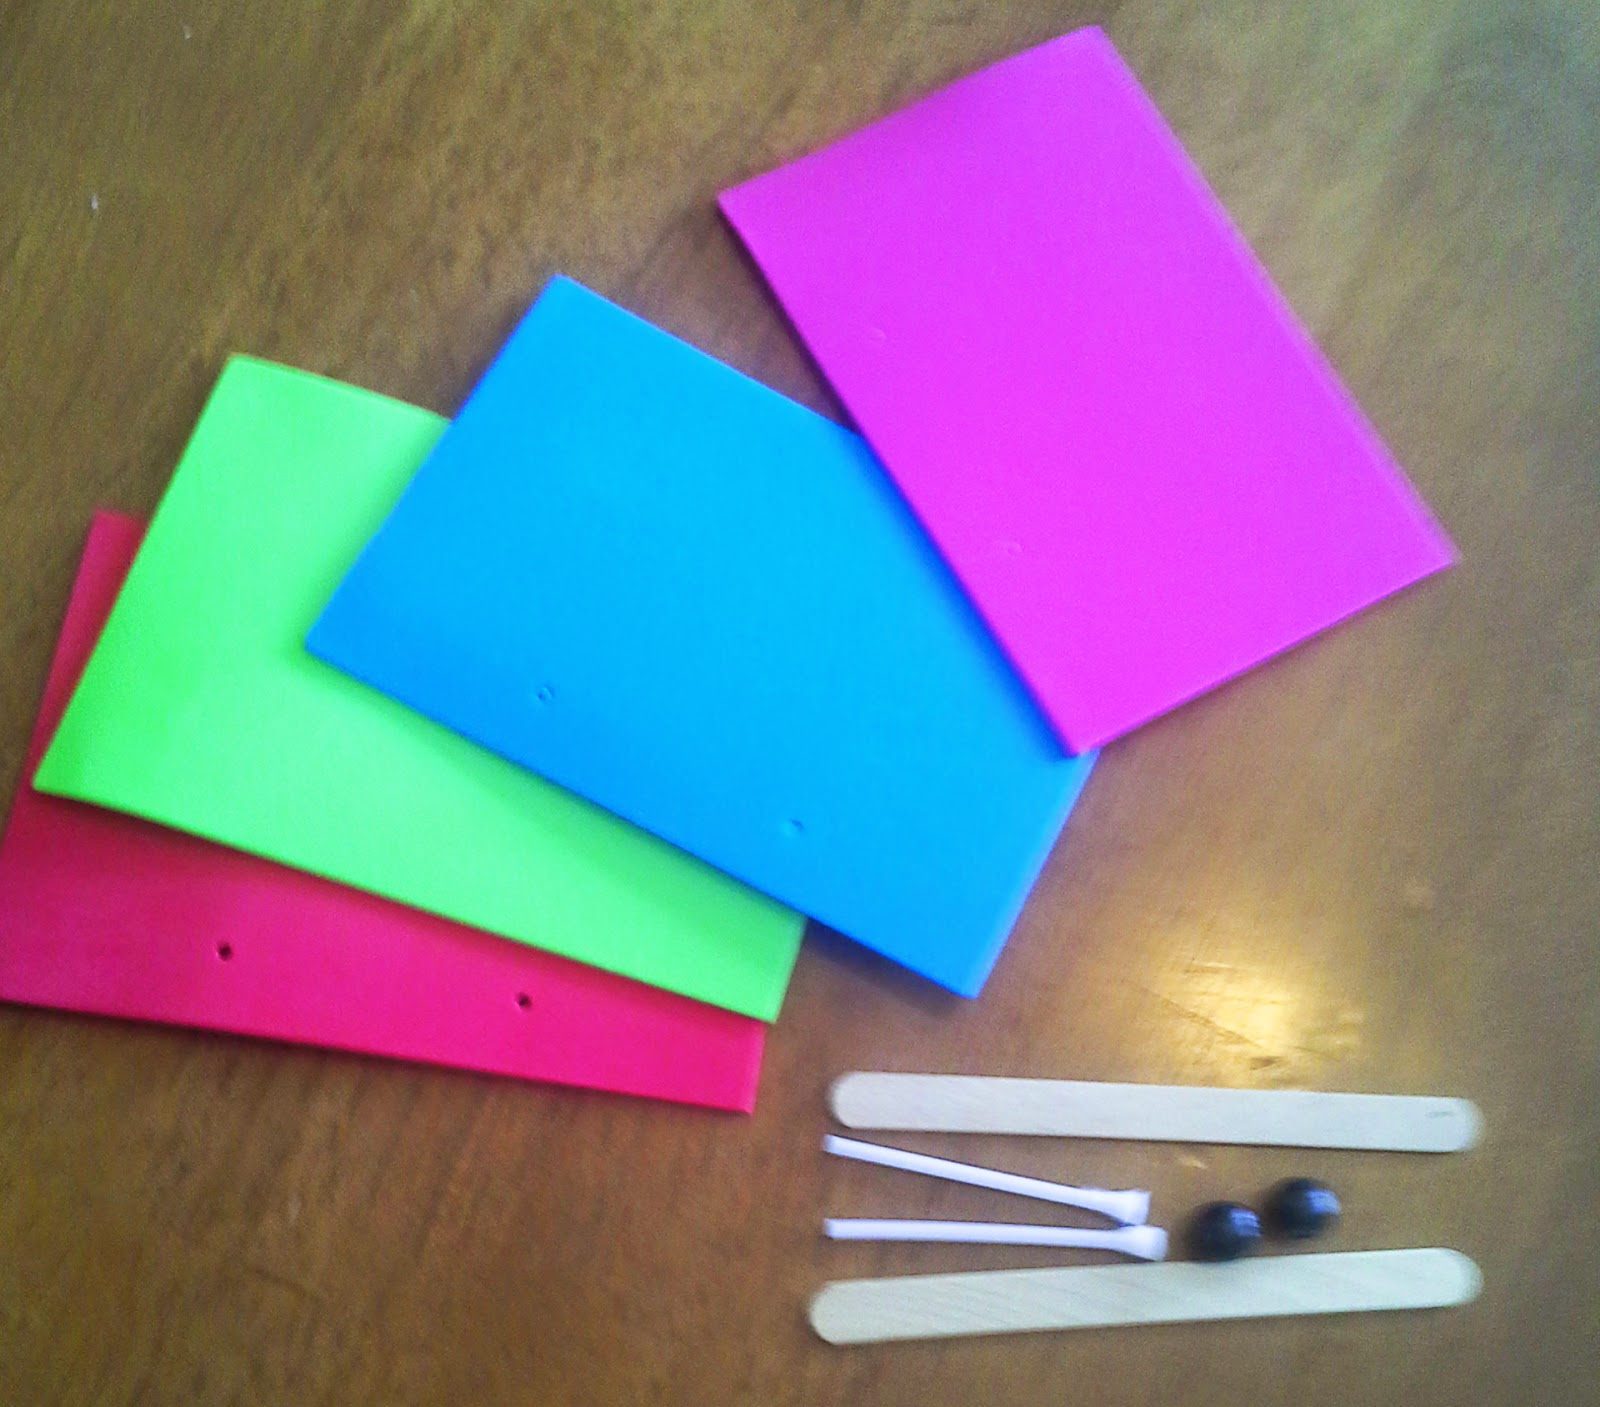 Colorful foam, popsicle sticks, beans and lollipop sticks for Glimmercat's Letter X (xylophone) activity